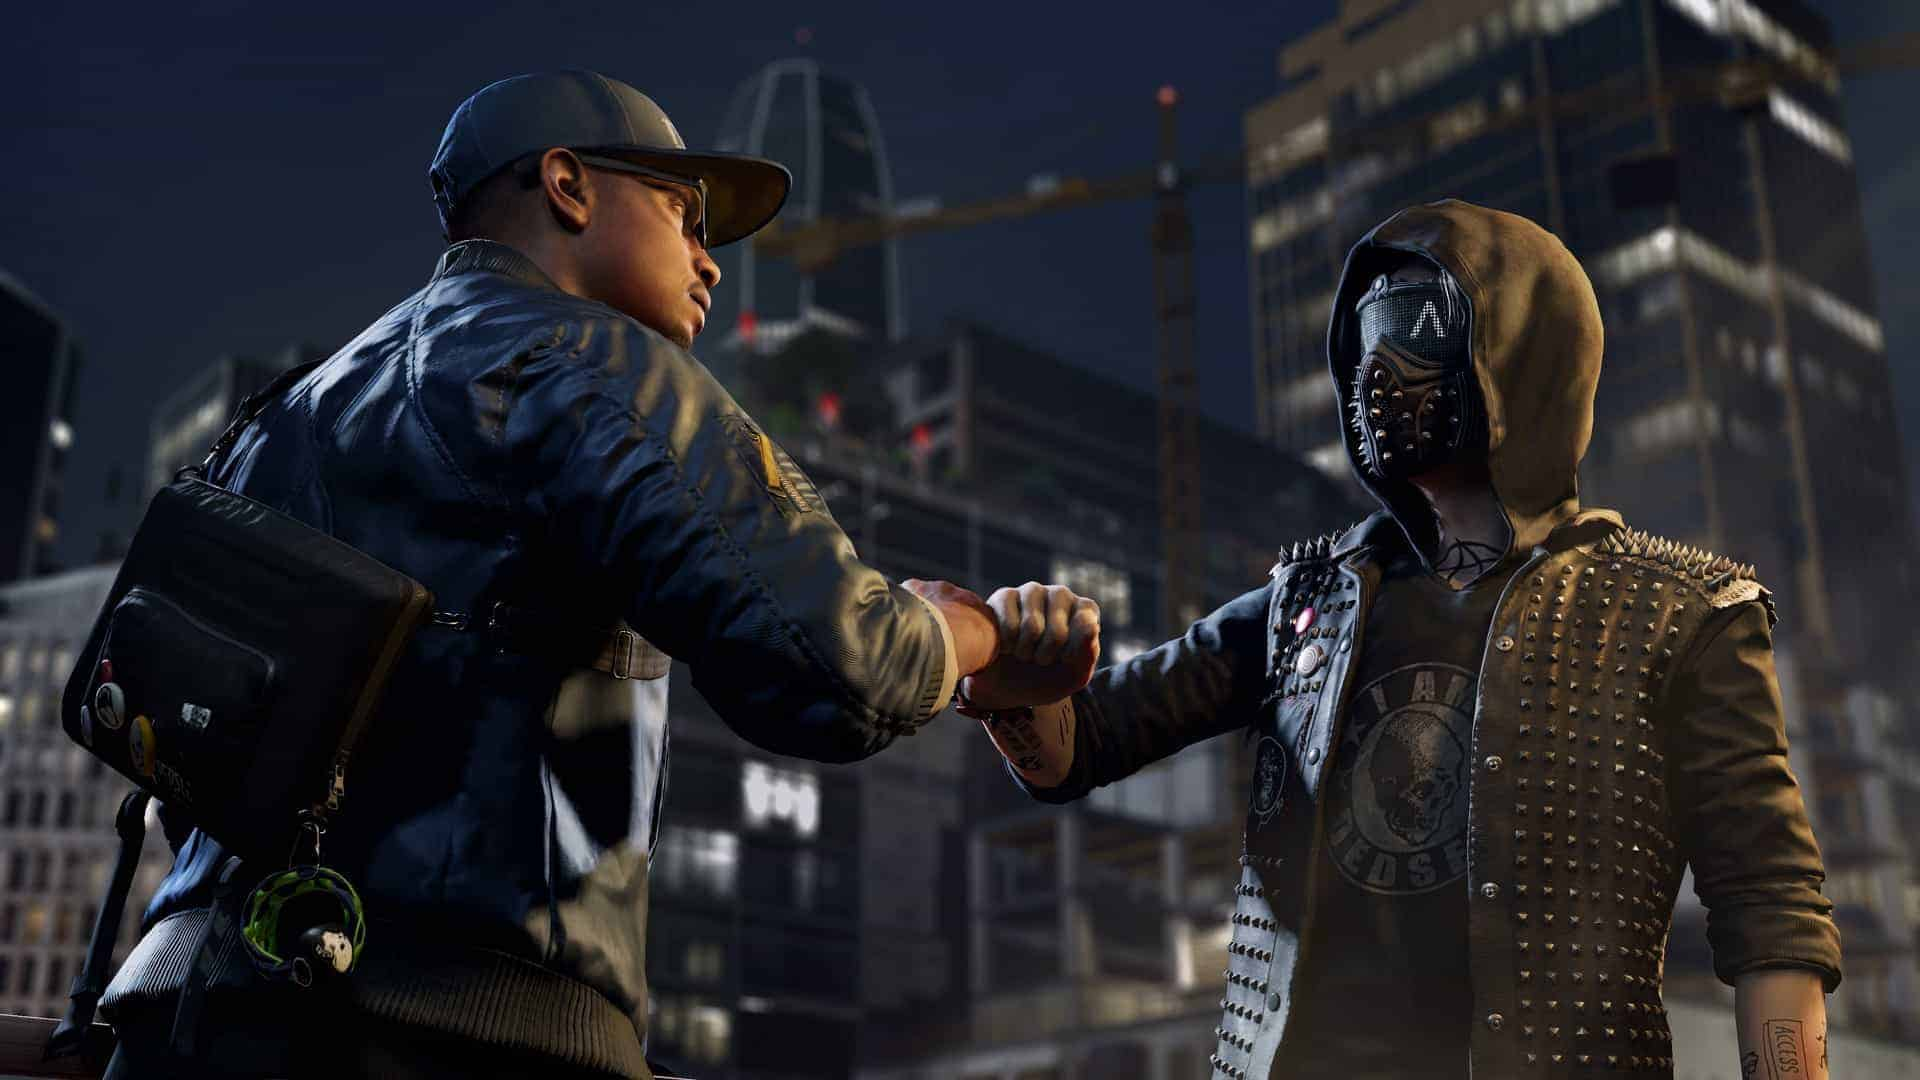 watch dogs 2 best hacking games